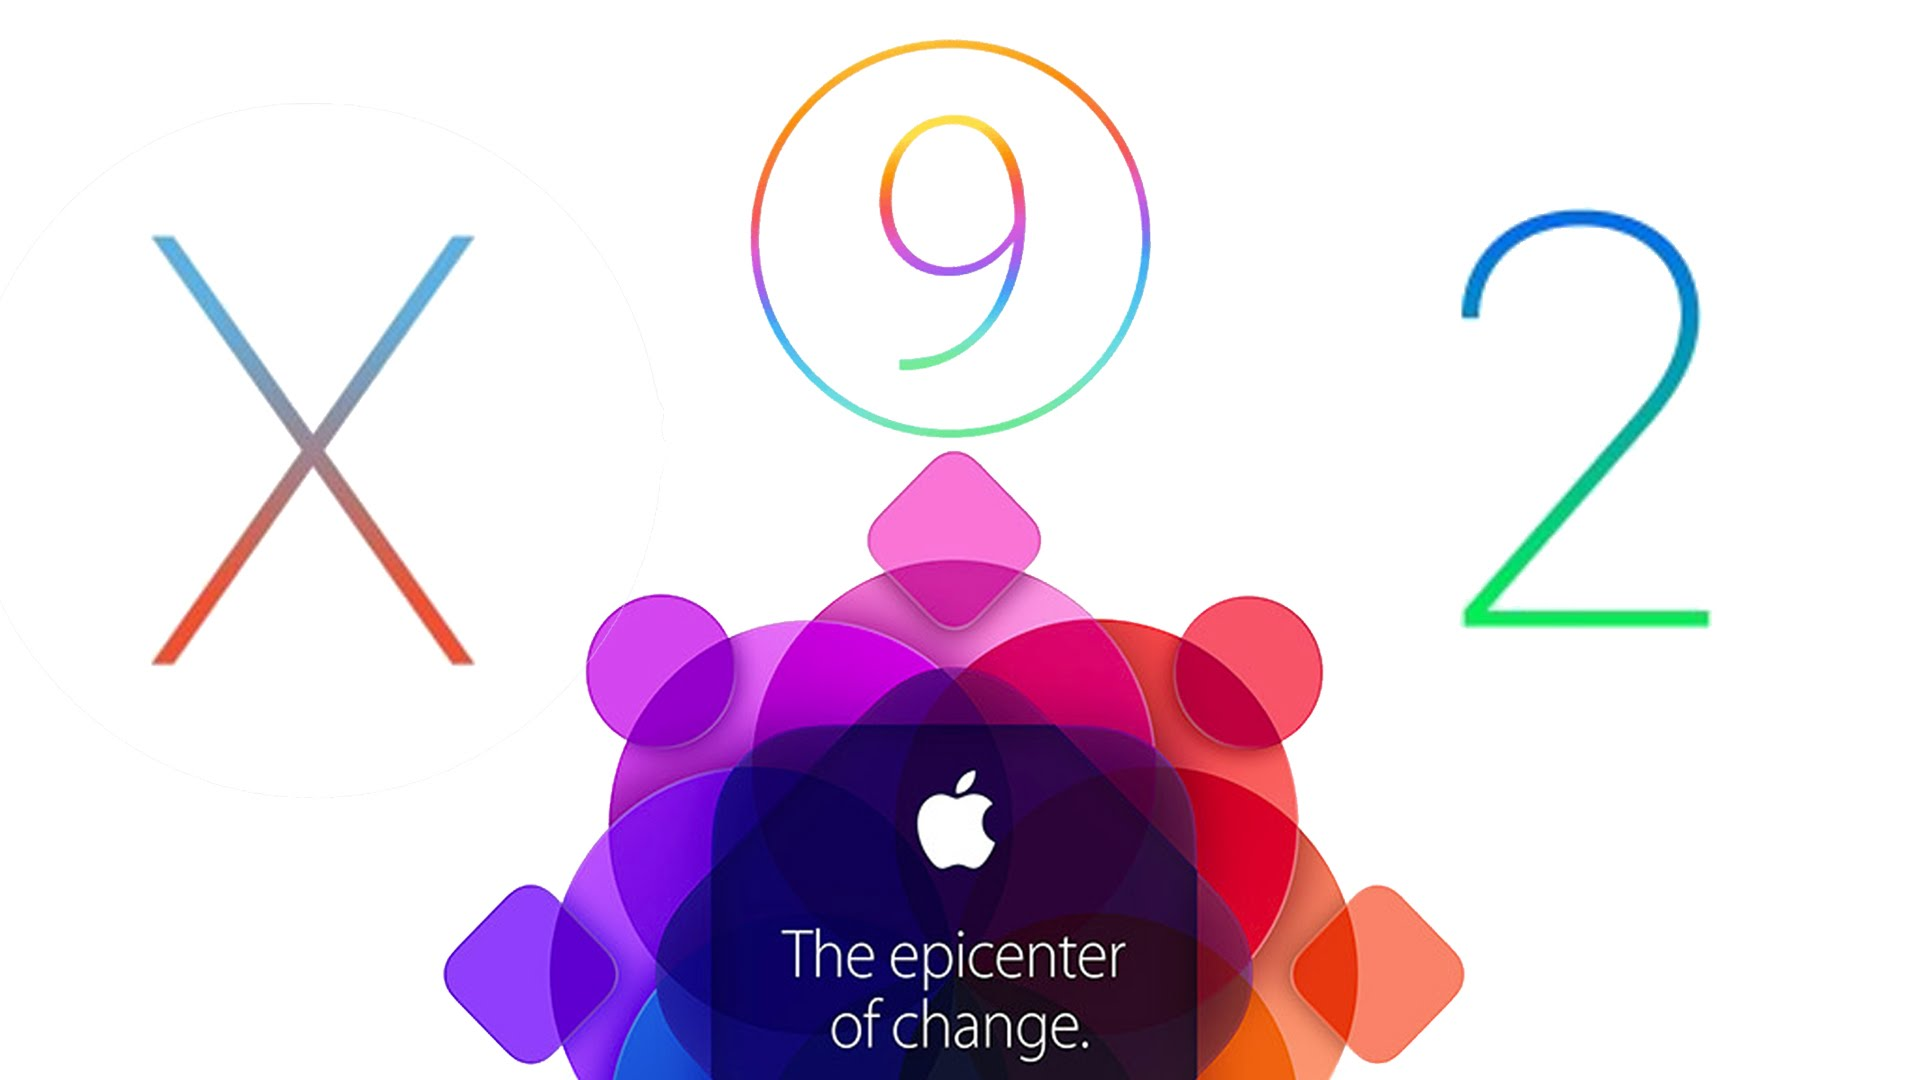 Apple announces iOS 9,OS X EI Capitan, WatchOS 2 release dates